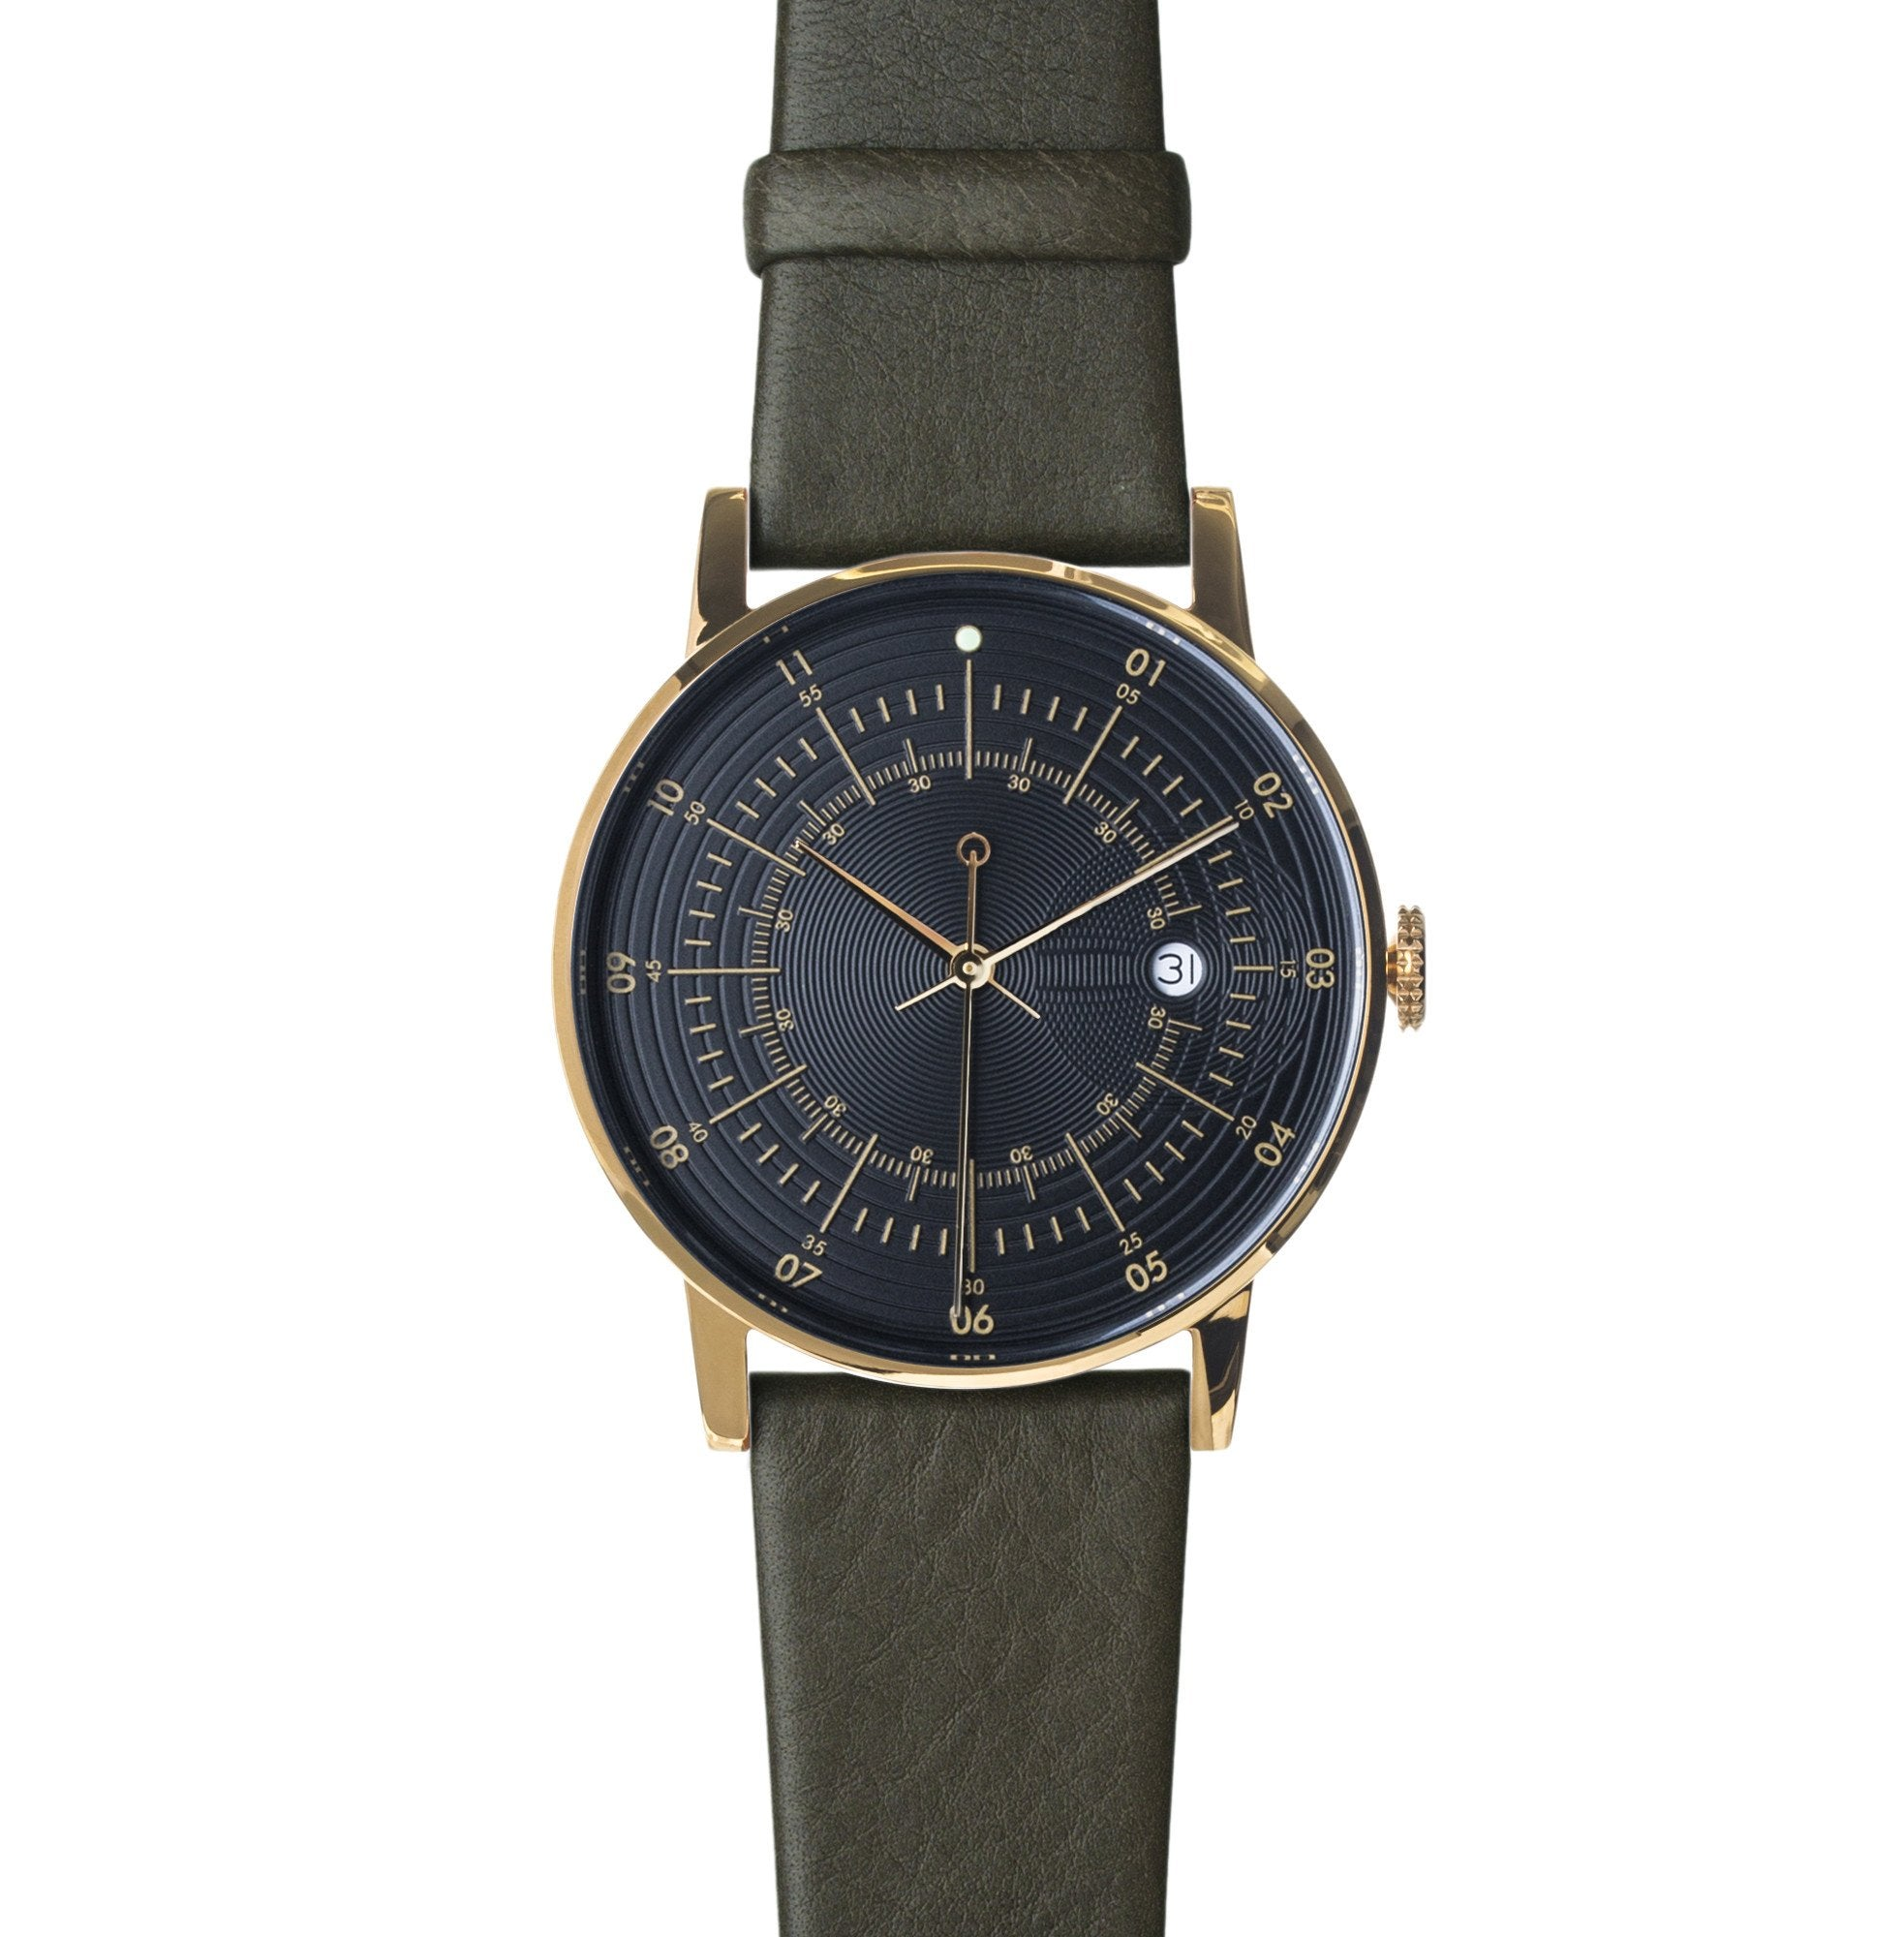 SQ38 Plano watch, PS-38